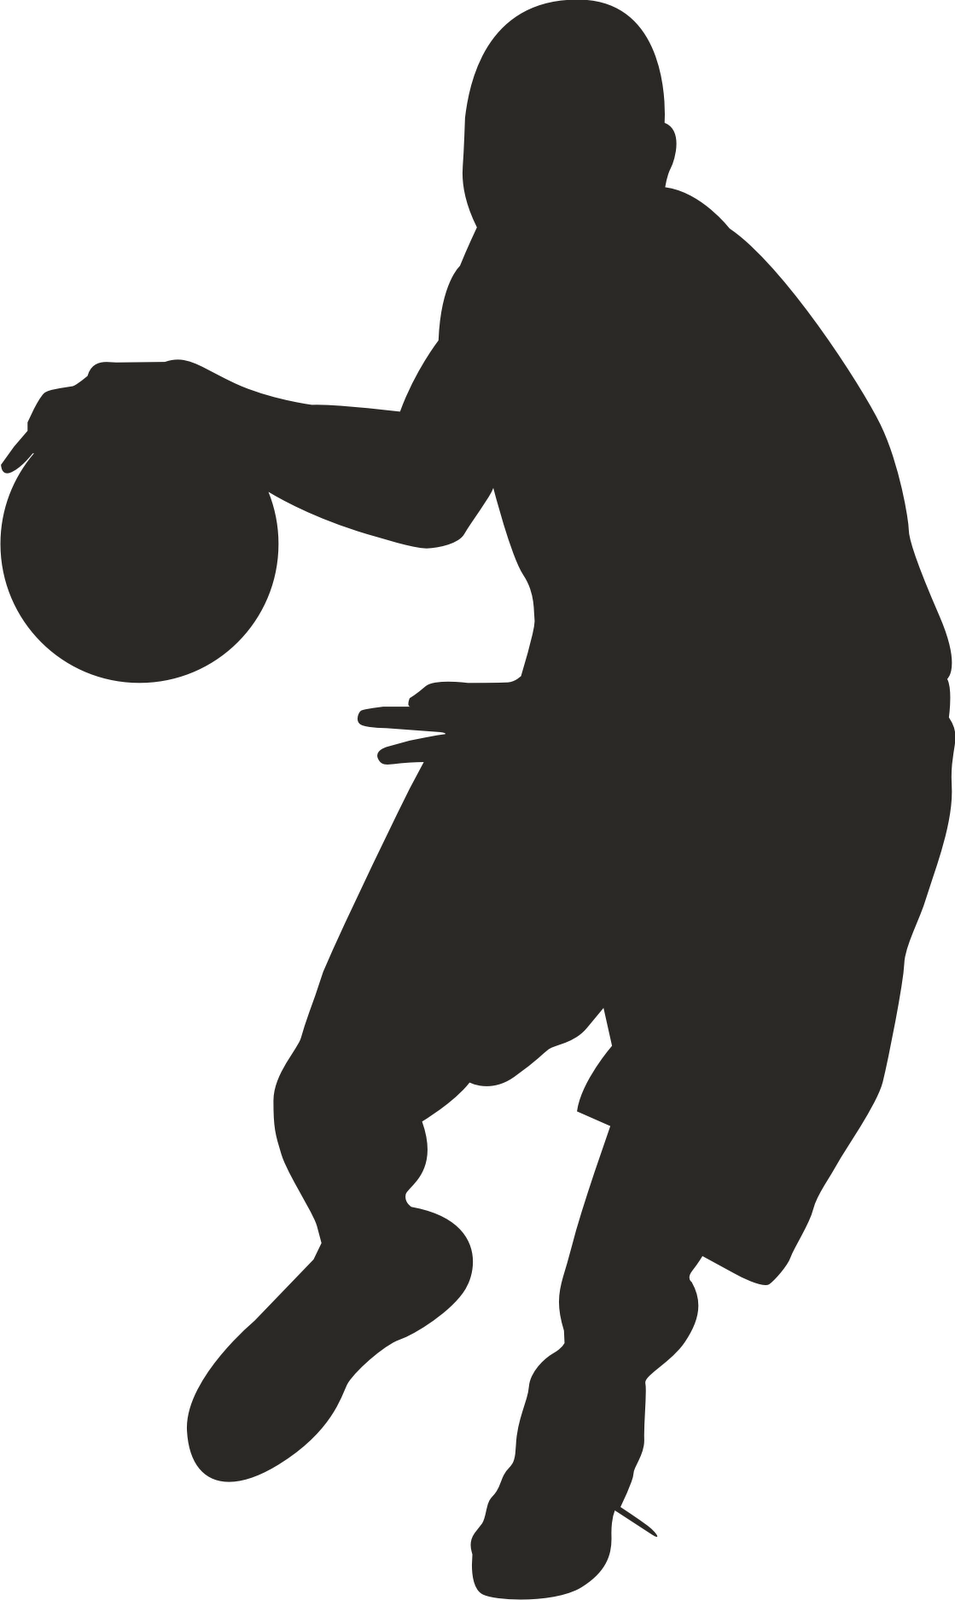 Clip Art Basket Black And White : Cartoon pictures of basketball players clipart best